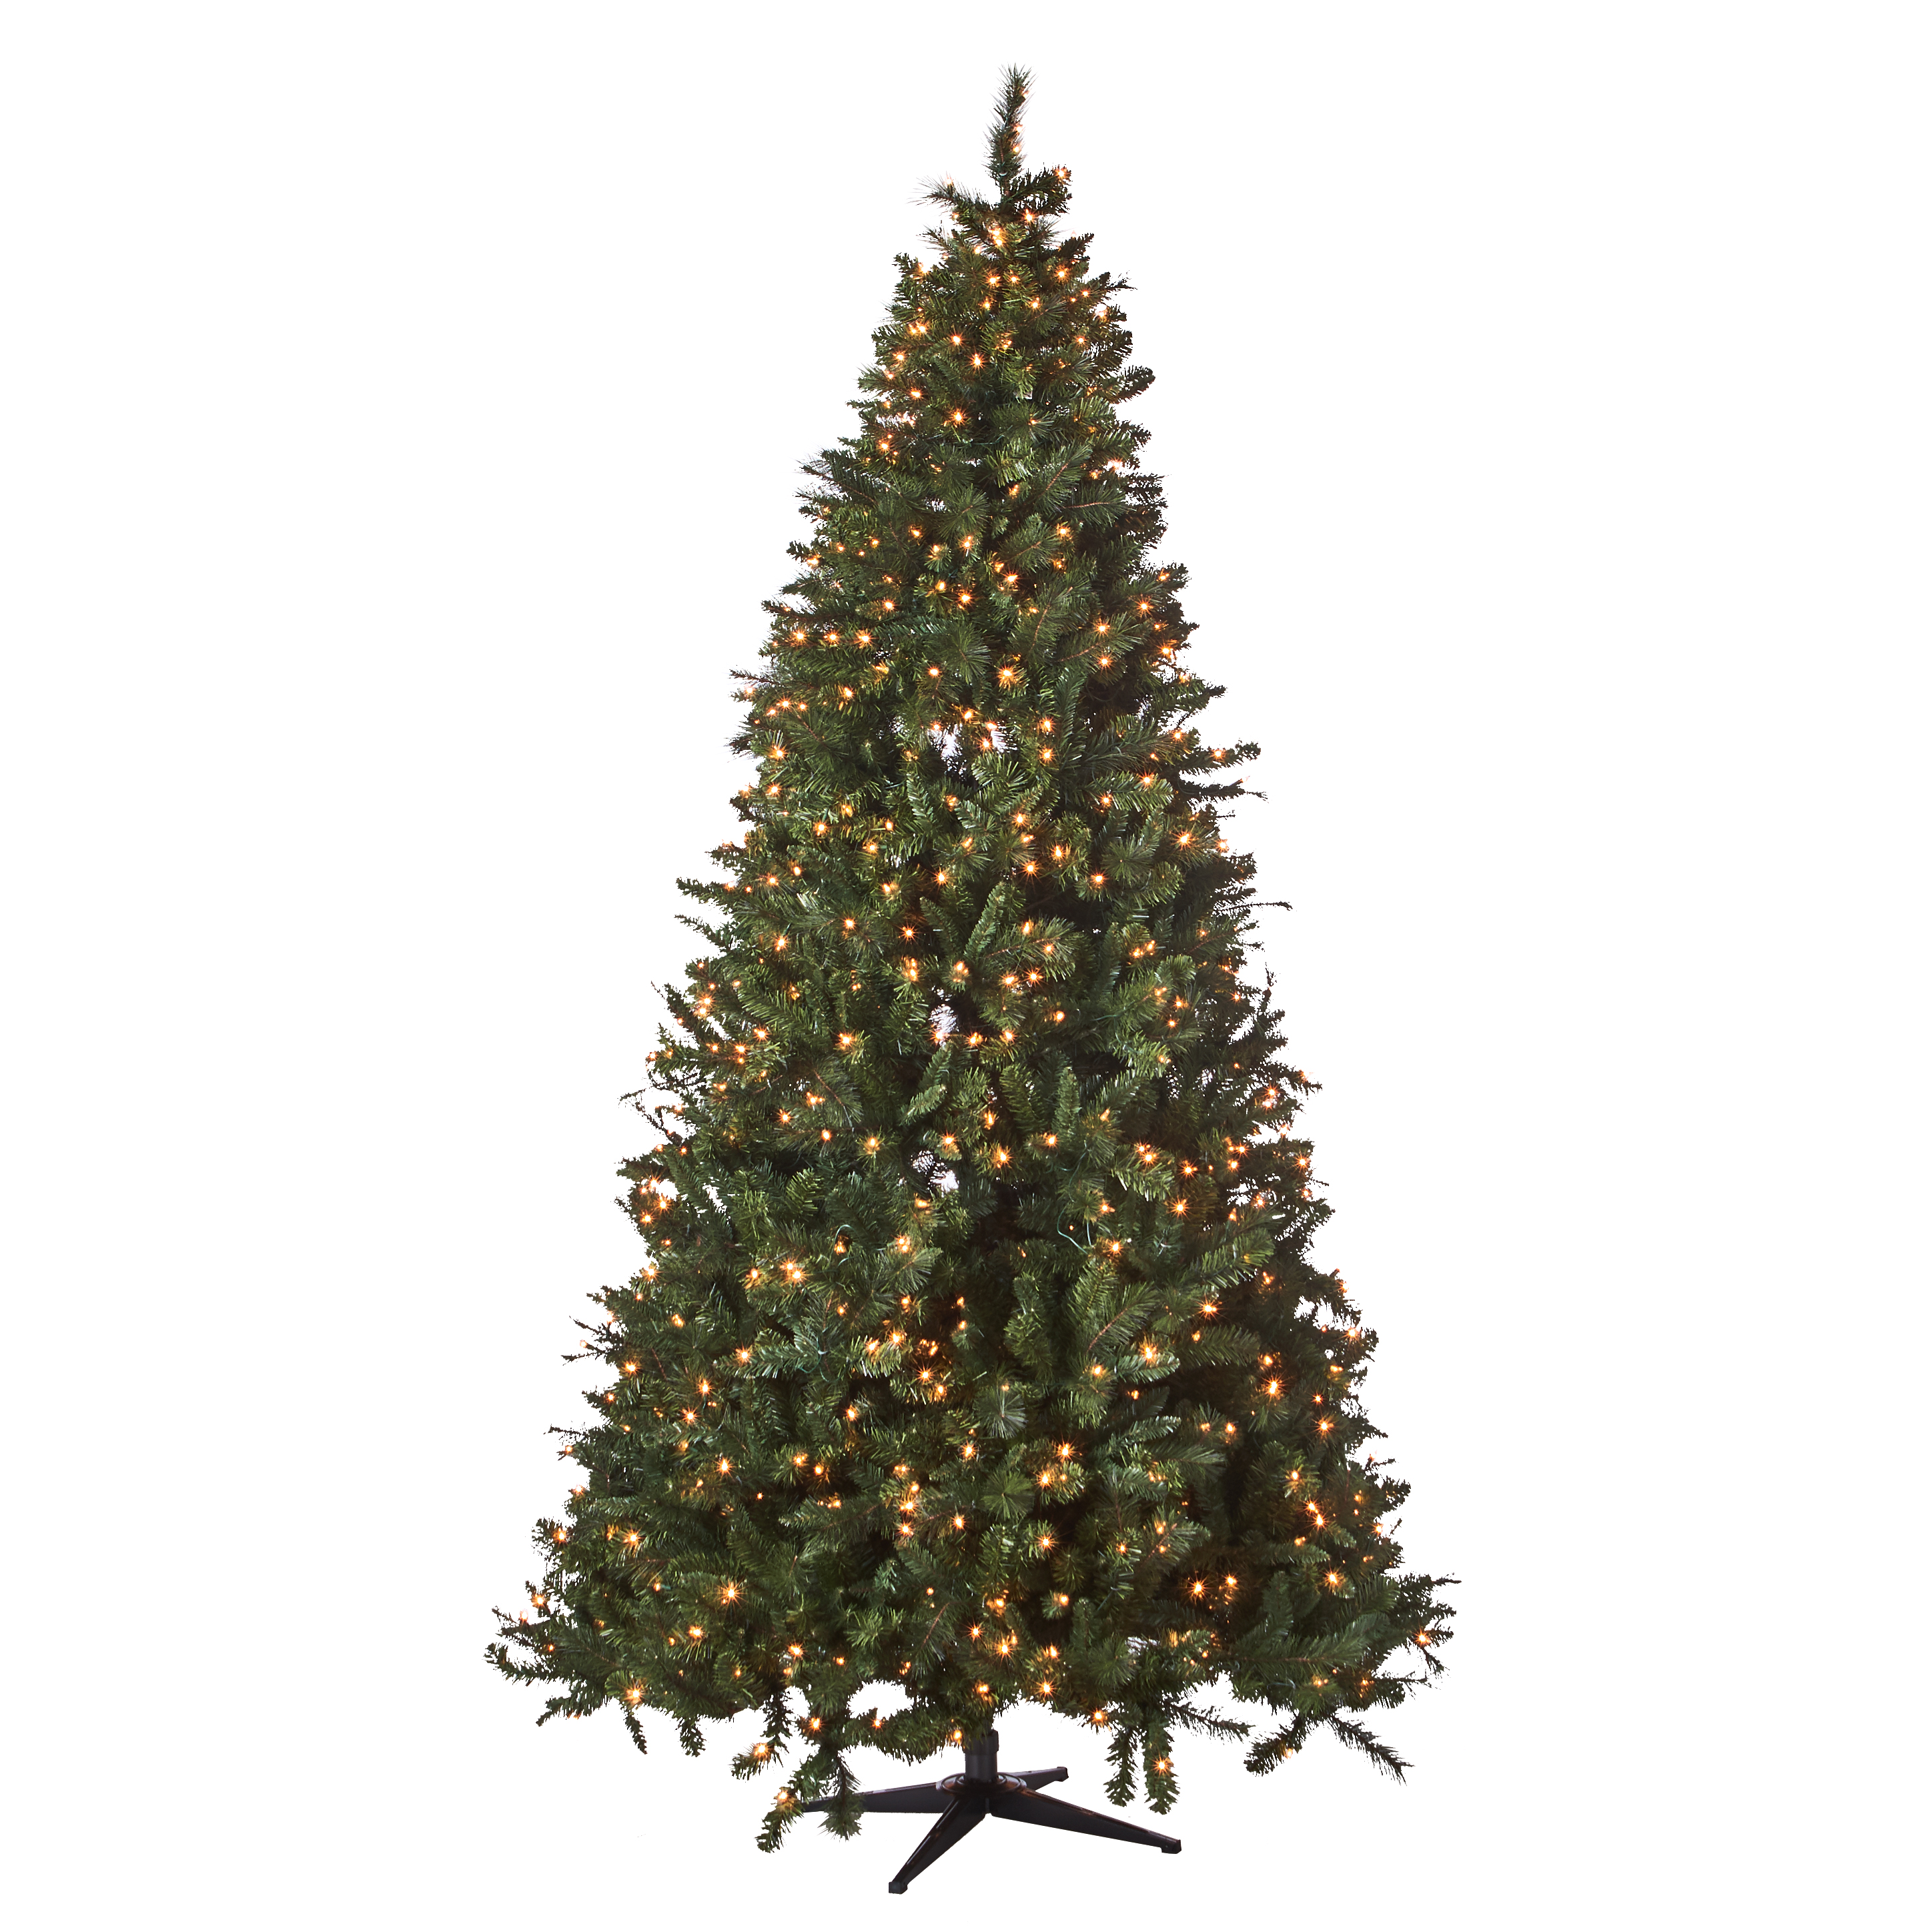 Holiday Time 9ft Pre-Lit Woodlake Spruce Artificial Christmas Tree with 1050 Clear Lights - Green